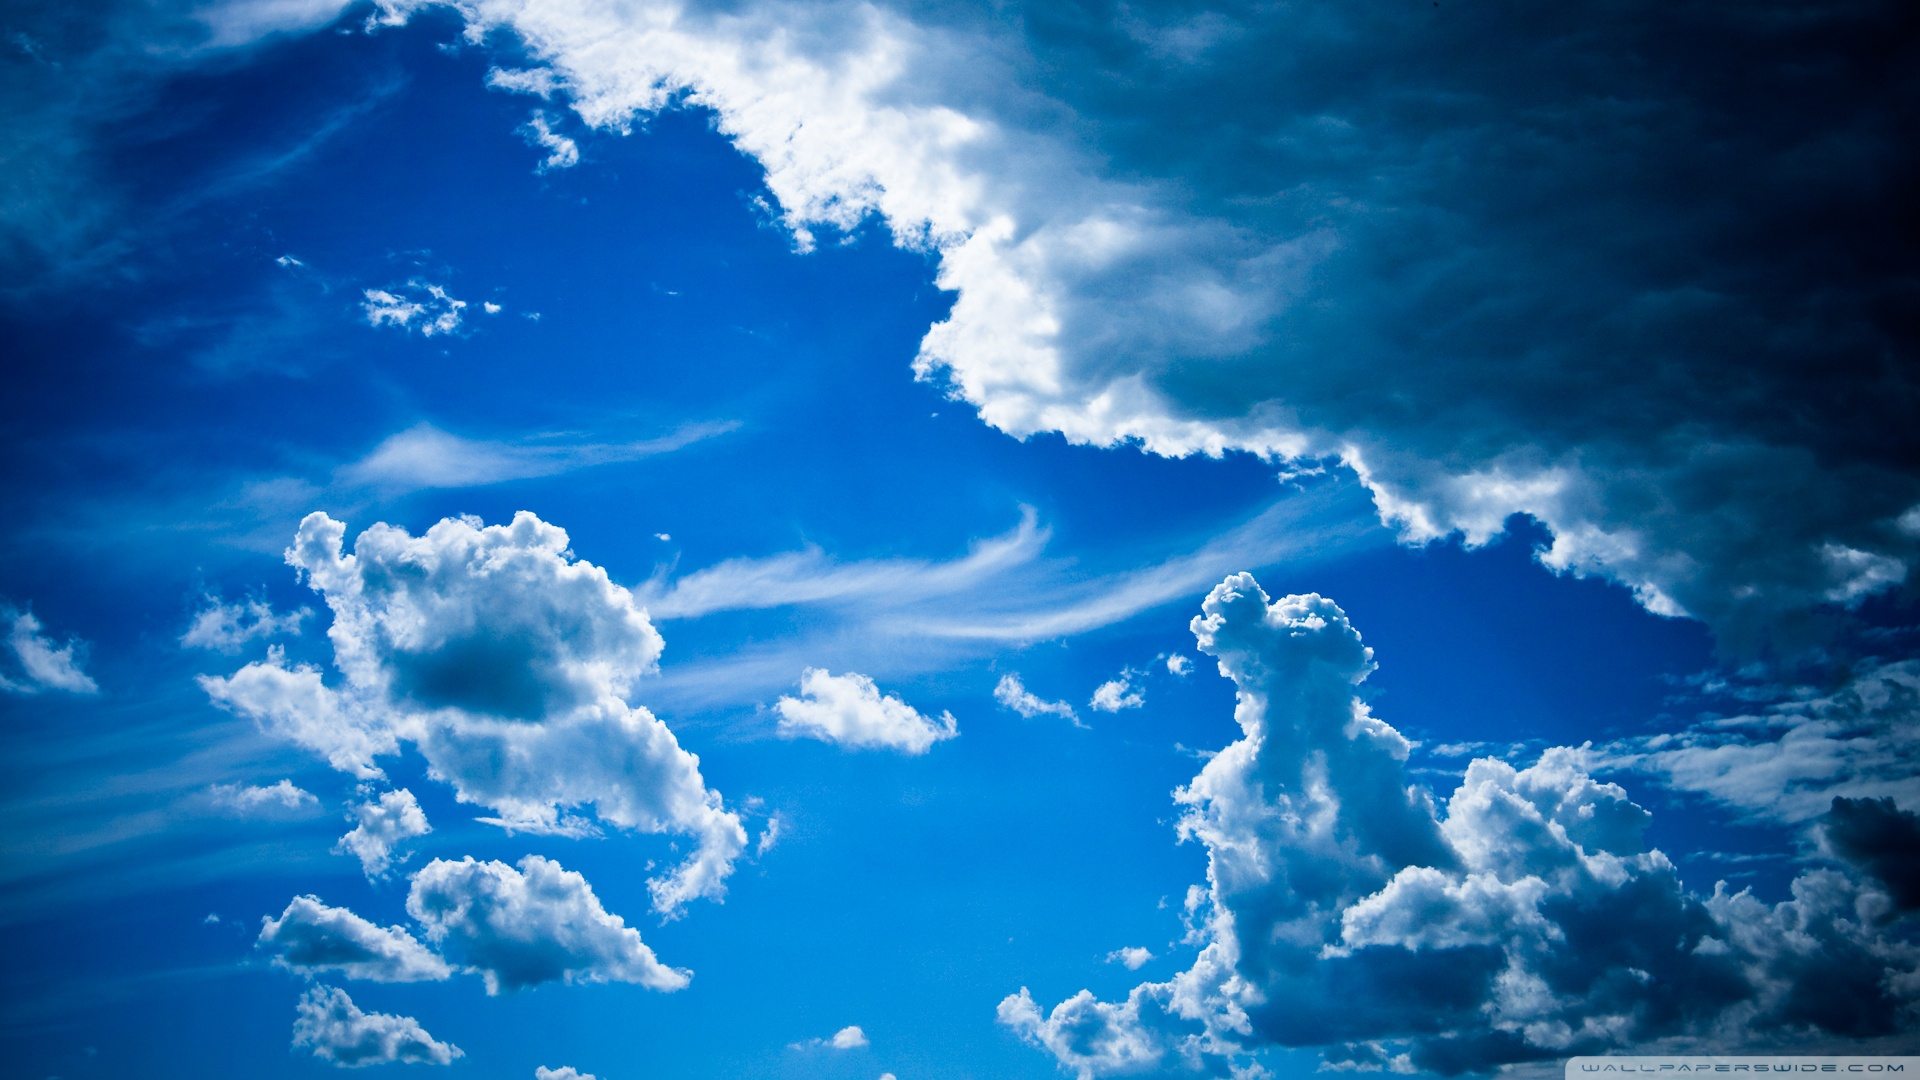 1920x1080px blue sky with clouds wallpaper - wallpapersafari